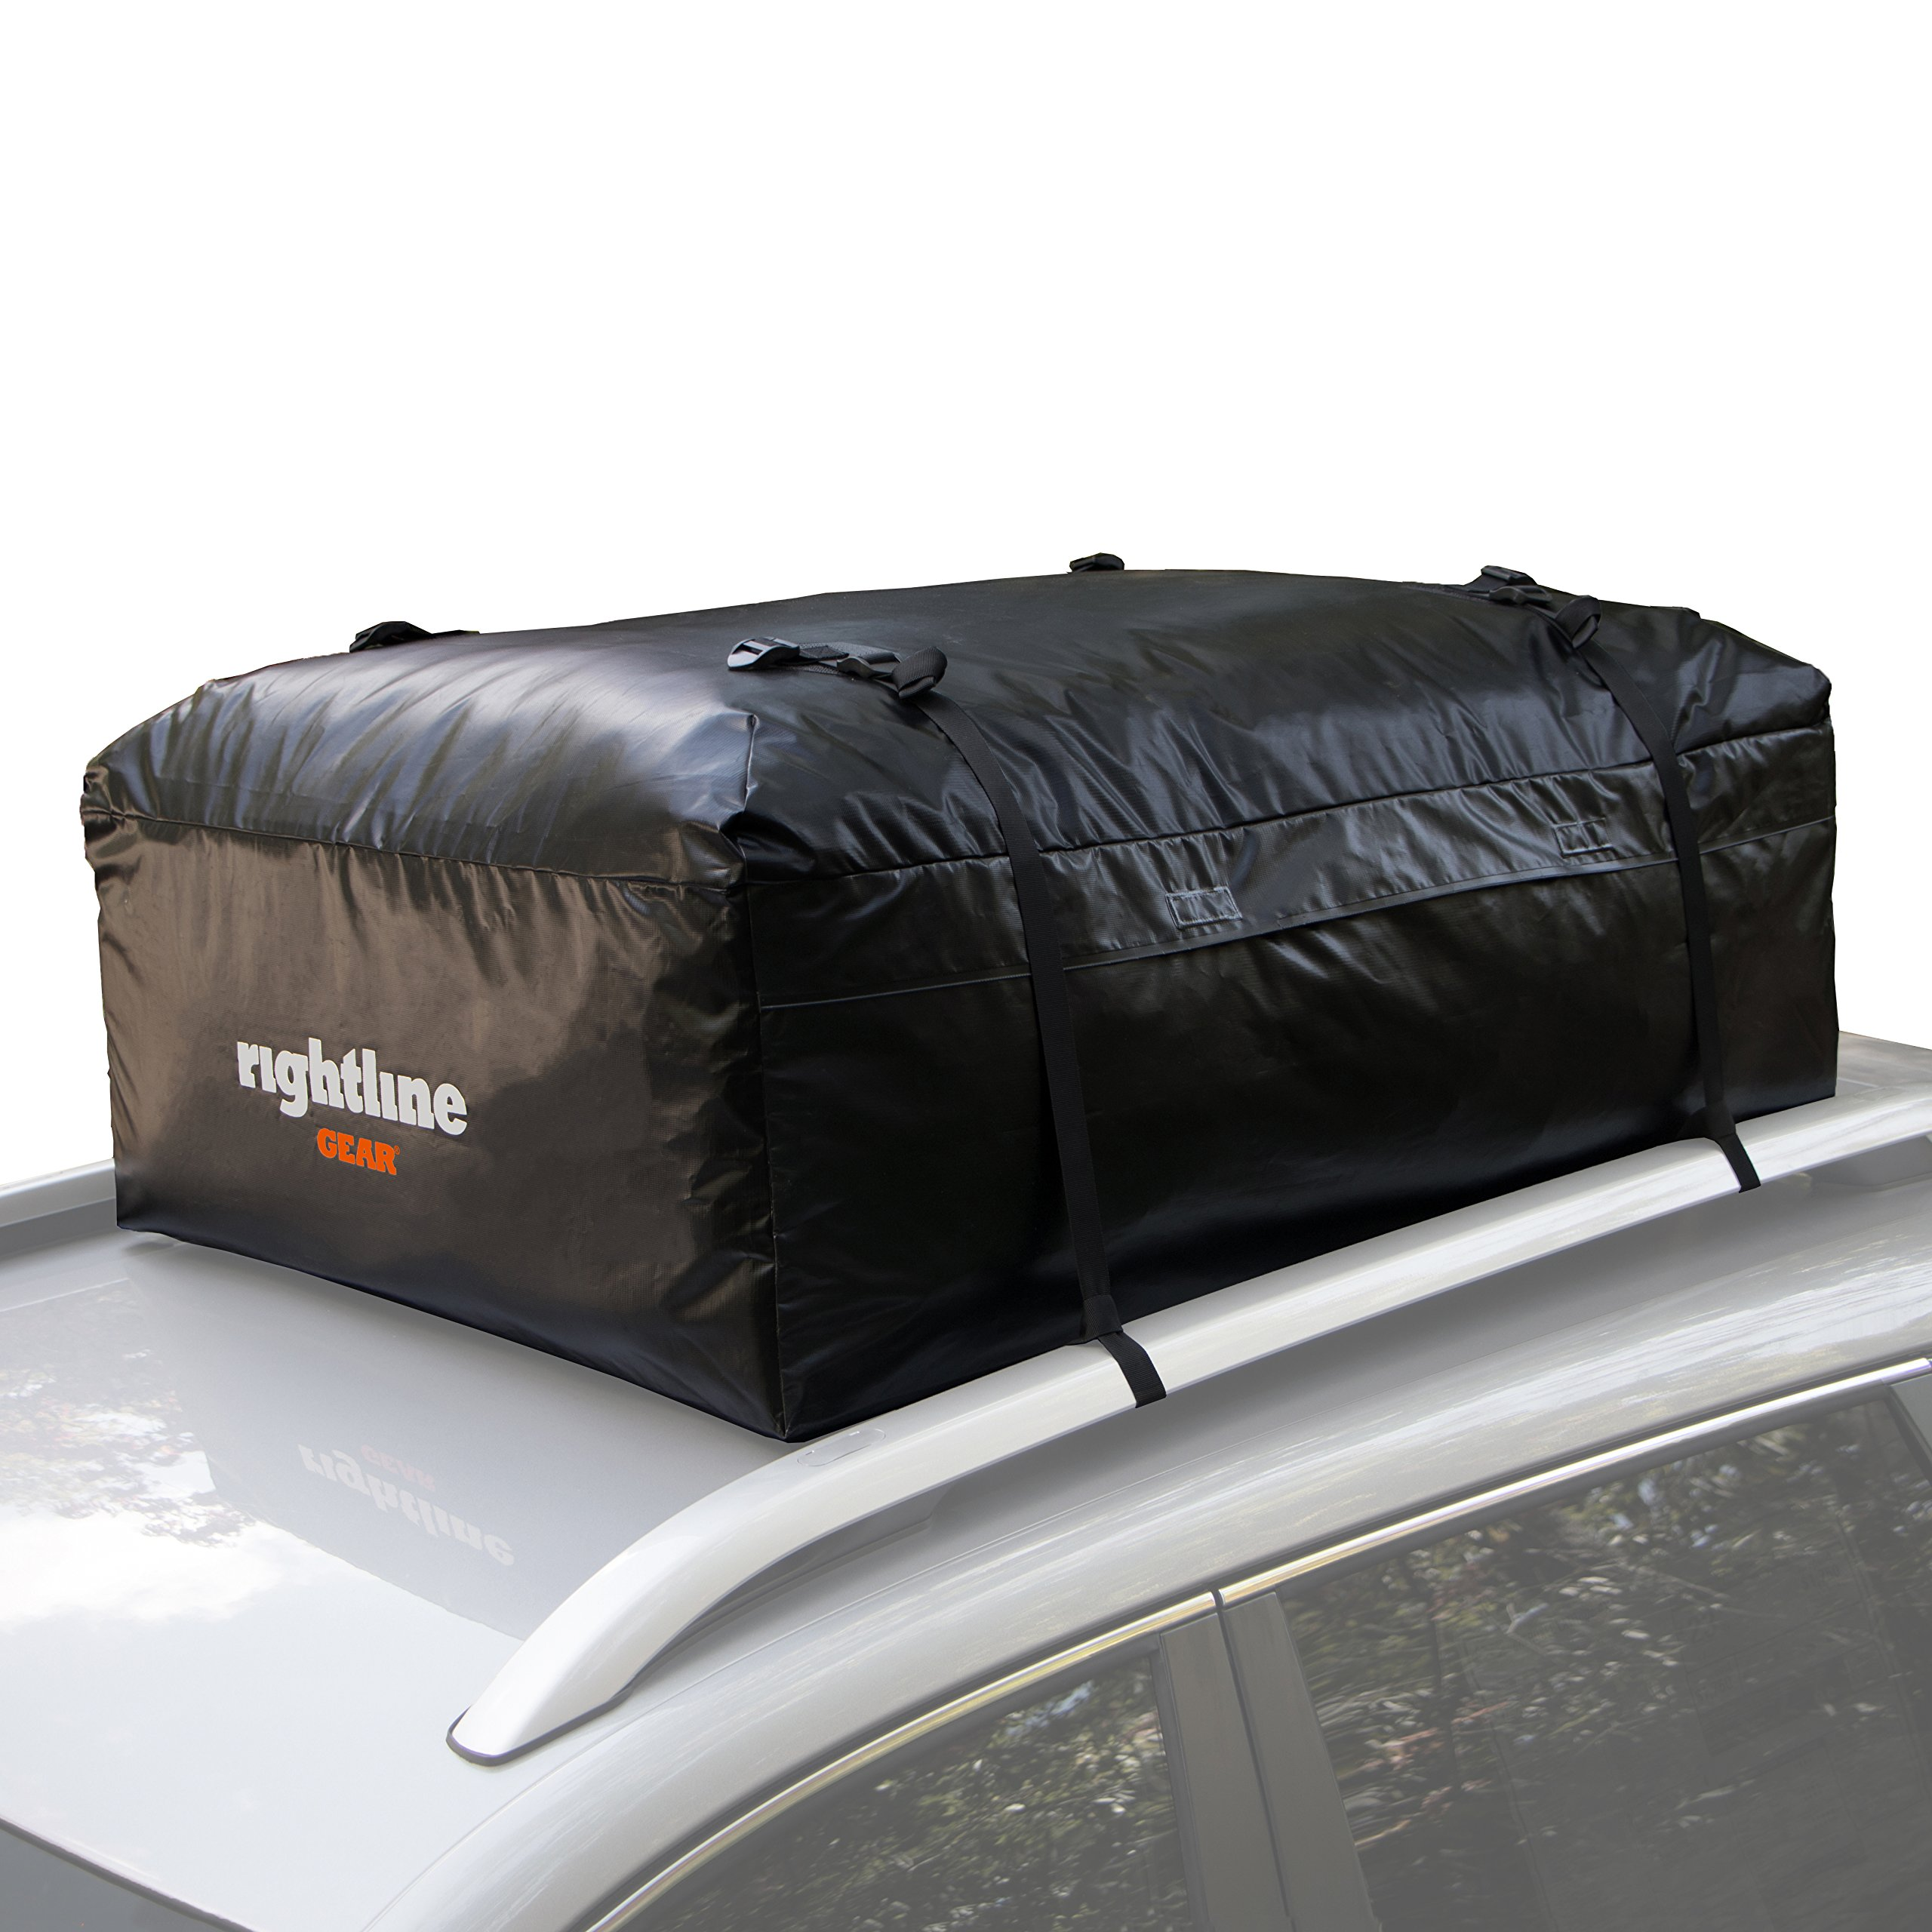 Rightline Gear 100A20 Ace 2 Car Top carrier, 15 cu ft, Weatherproof, Attaches With or Without Roof Rack by Rightline Gear